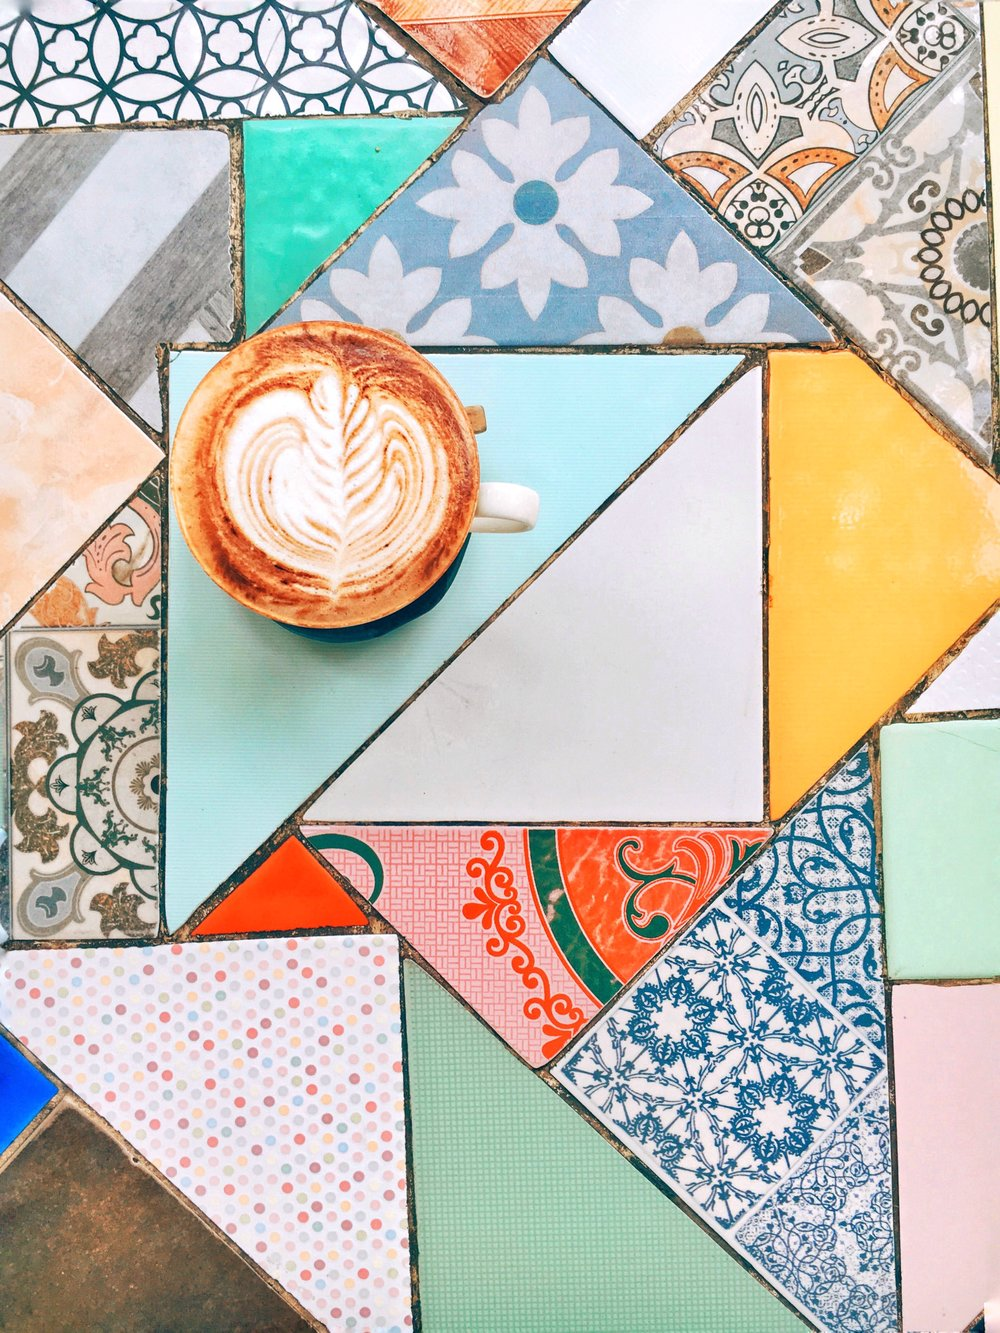 Color tiles and cappuccinos at SS1254372 Cafe